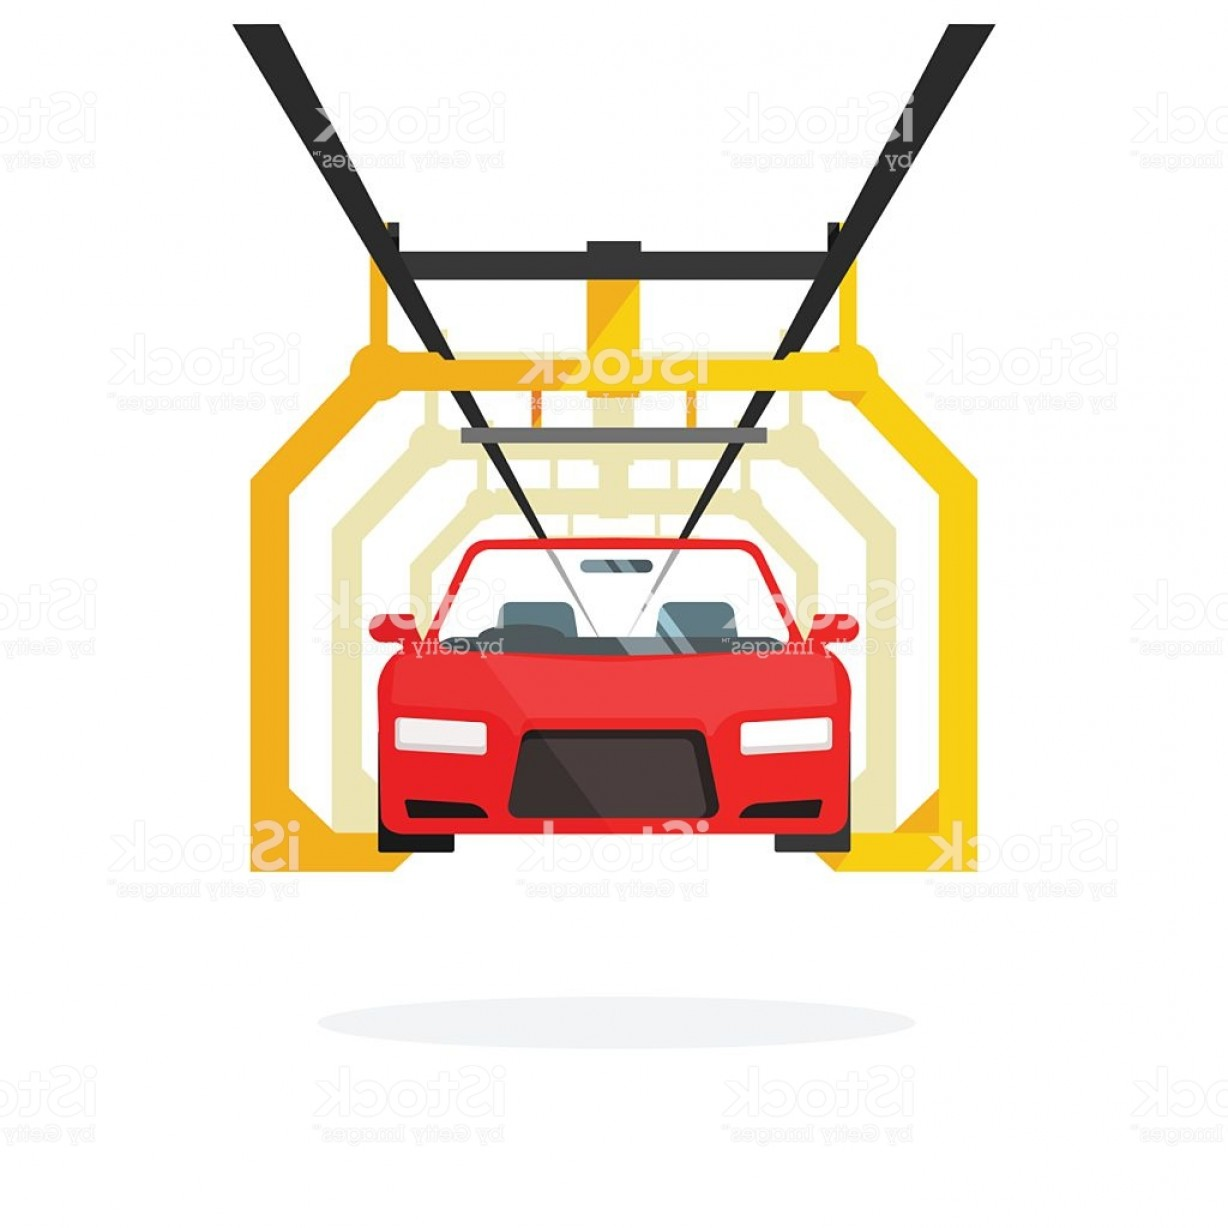 Auto Mobile Vector Art: Car Production Line Vector Illustration Auto Maintenance Process Automobile Gm